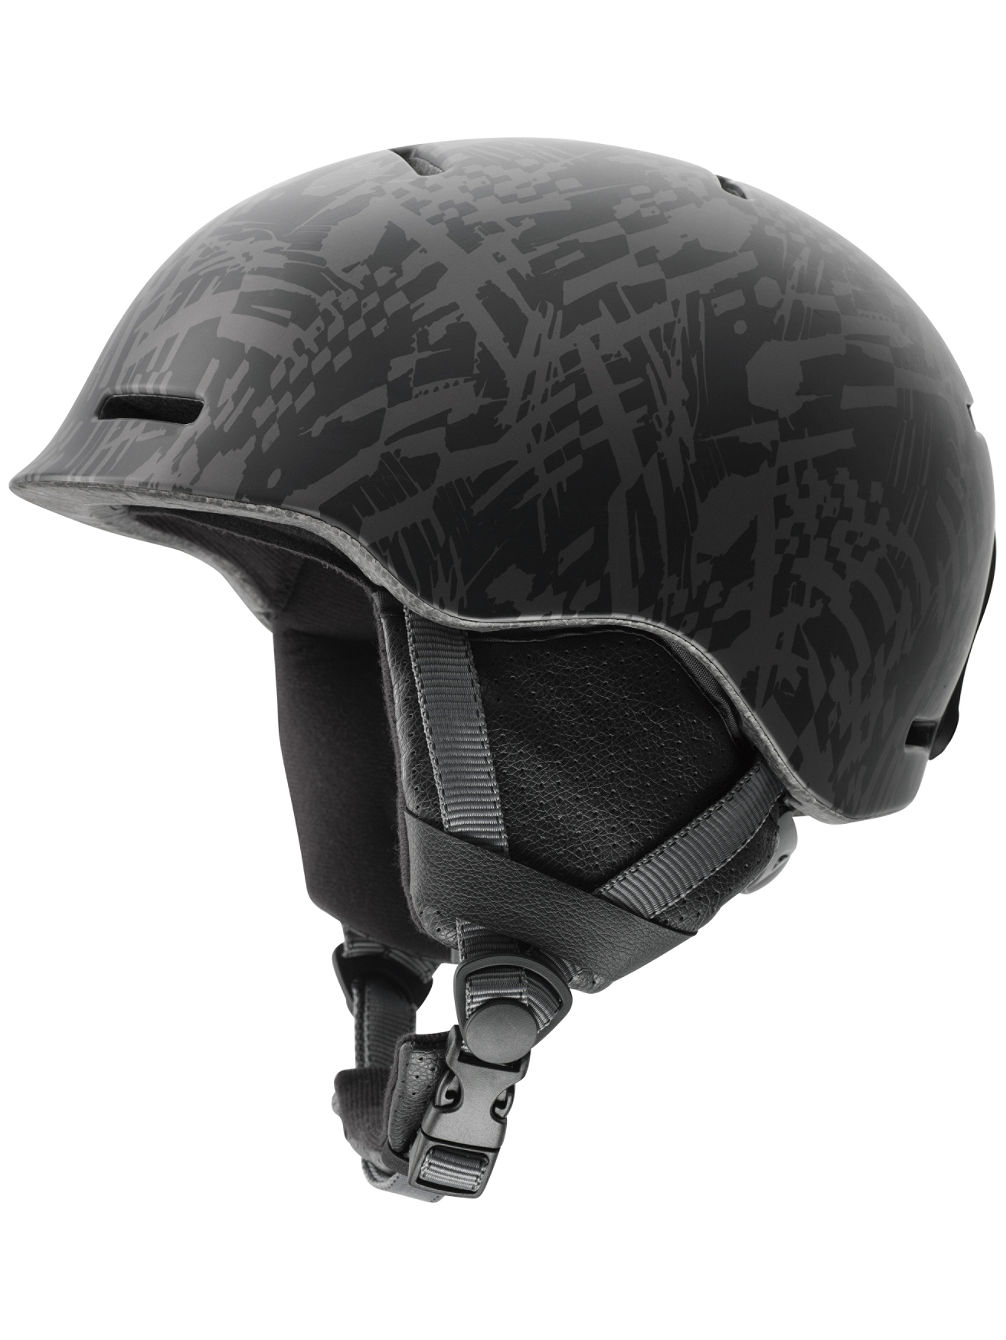 Mentor Snowboard Helmet Youth Youth